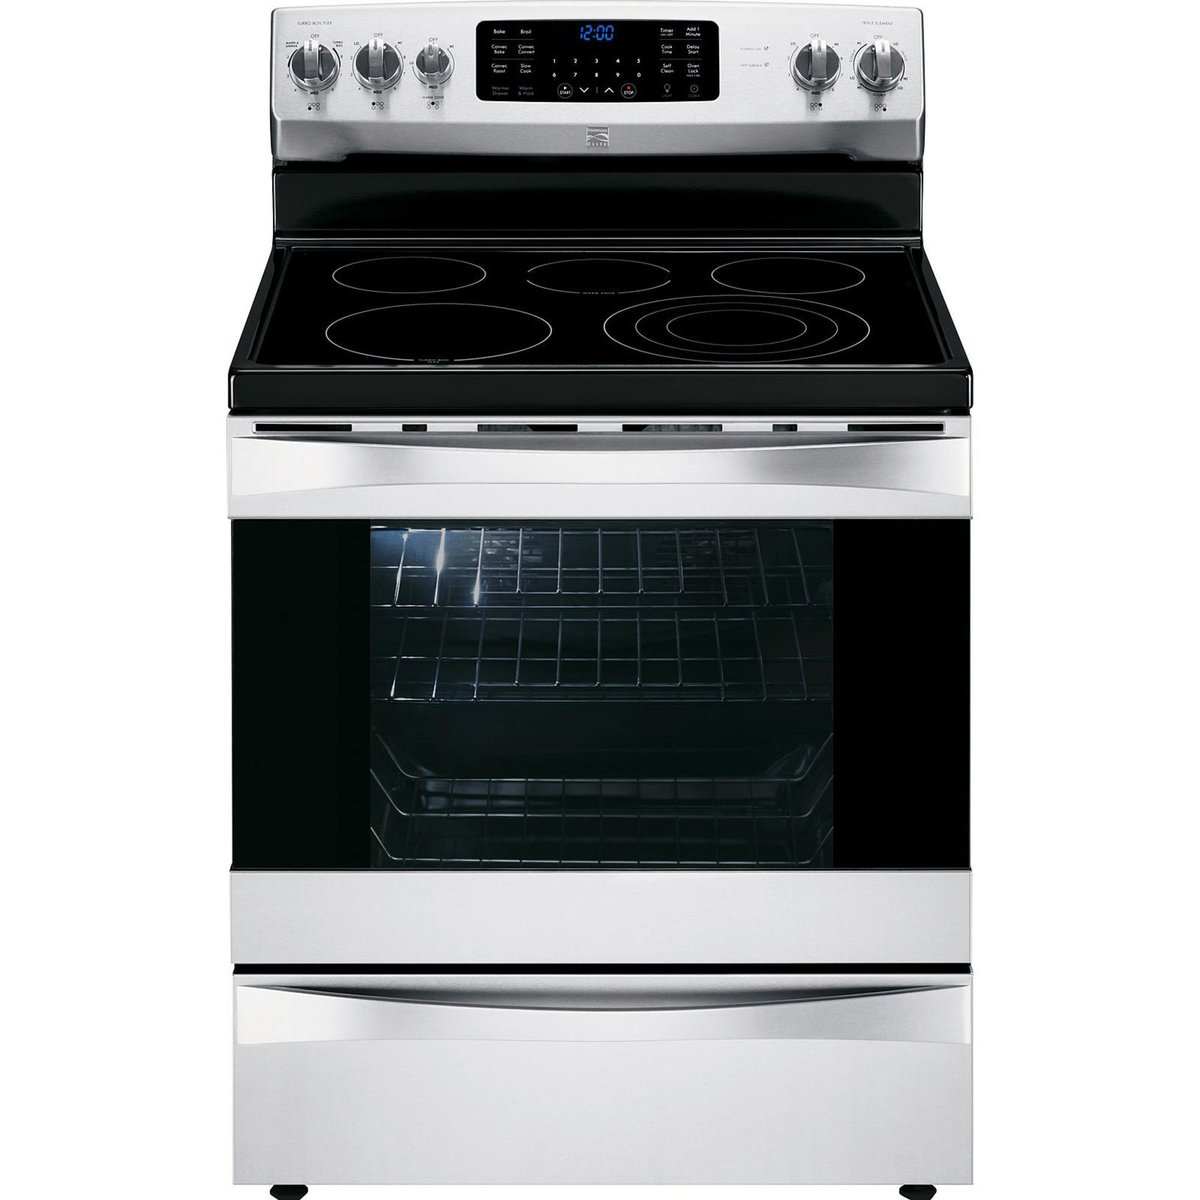 Kenmore Elite 95053 Electric Range Black Friday Deal 2020